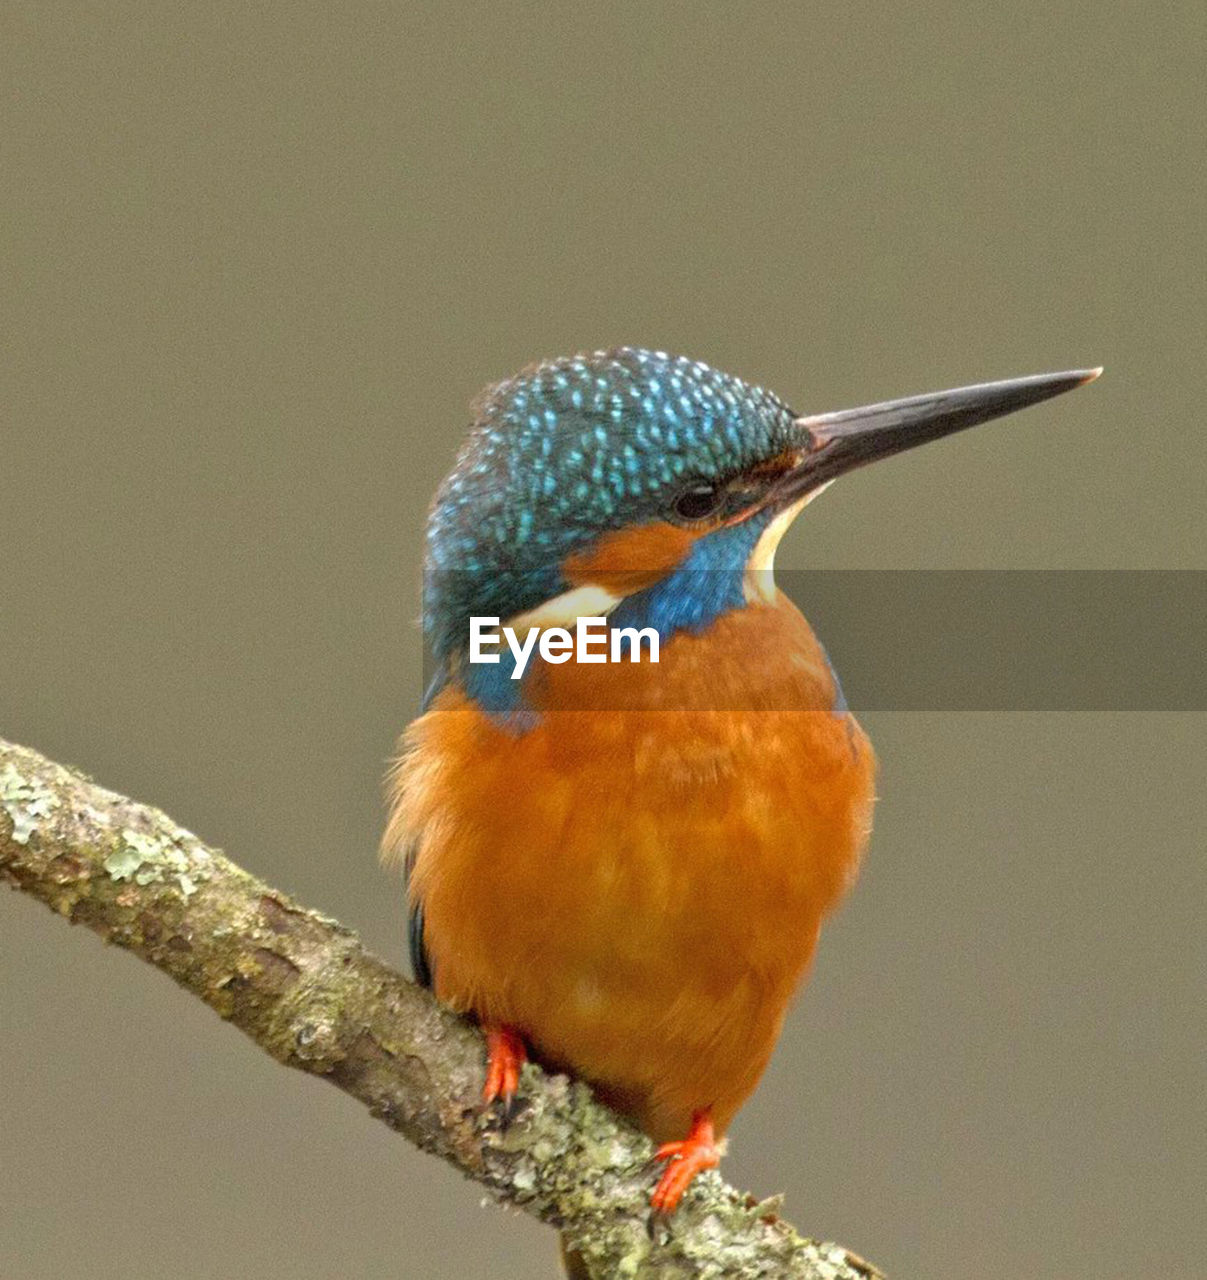 animal themes, animal, bird, animal wildlife, one animal, animals in the wild, vertebrate, perching, close-up, focus on foreground, branch, day, kingfisher, tree, nature, no people, looking, twig, plant, outdoors